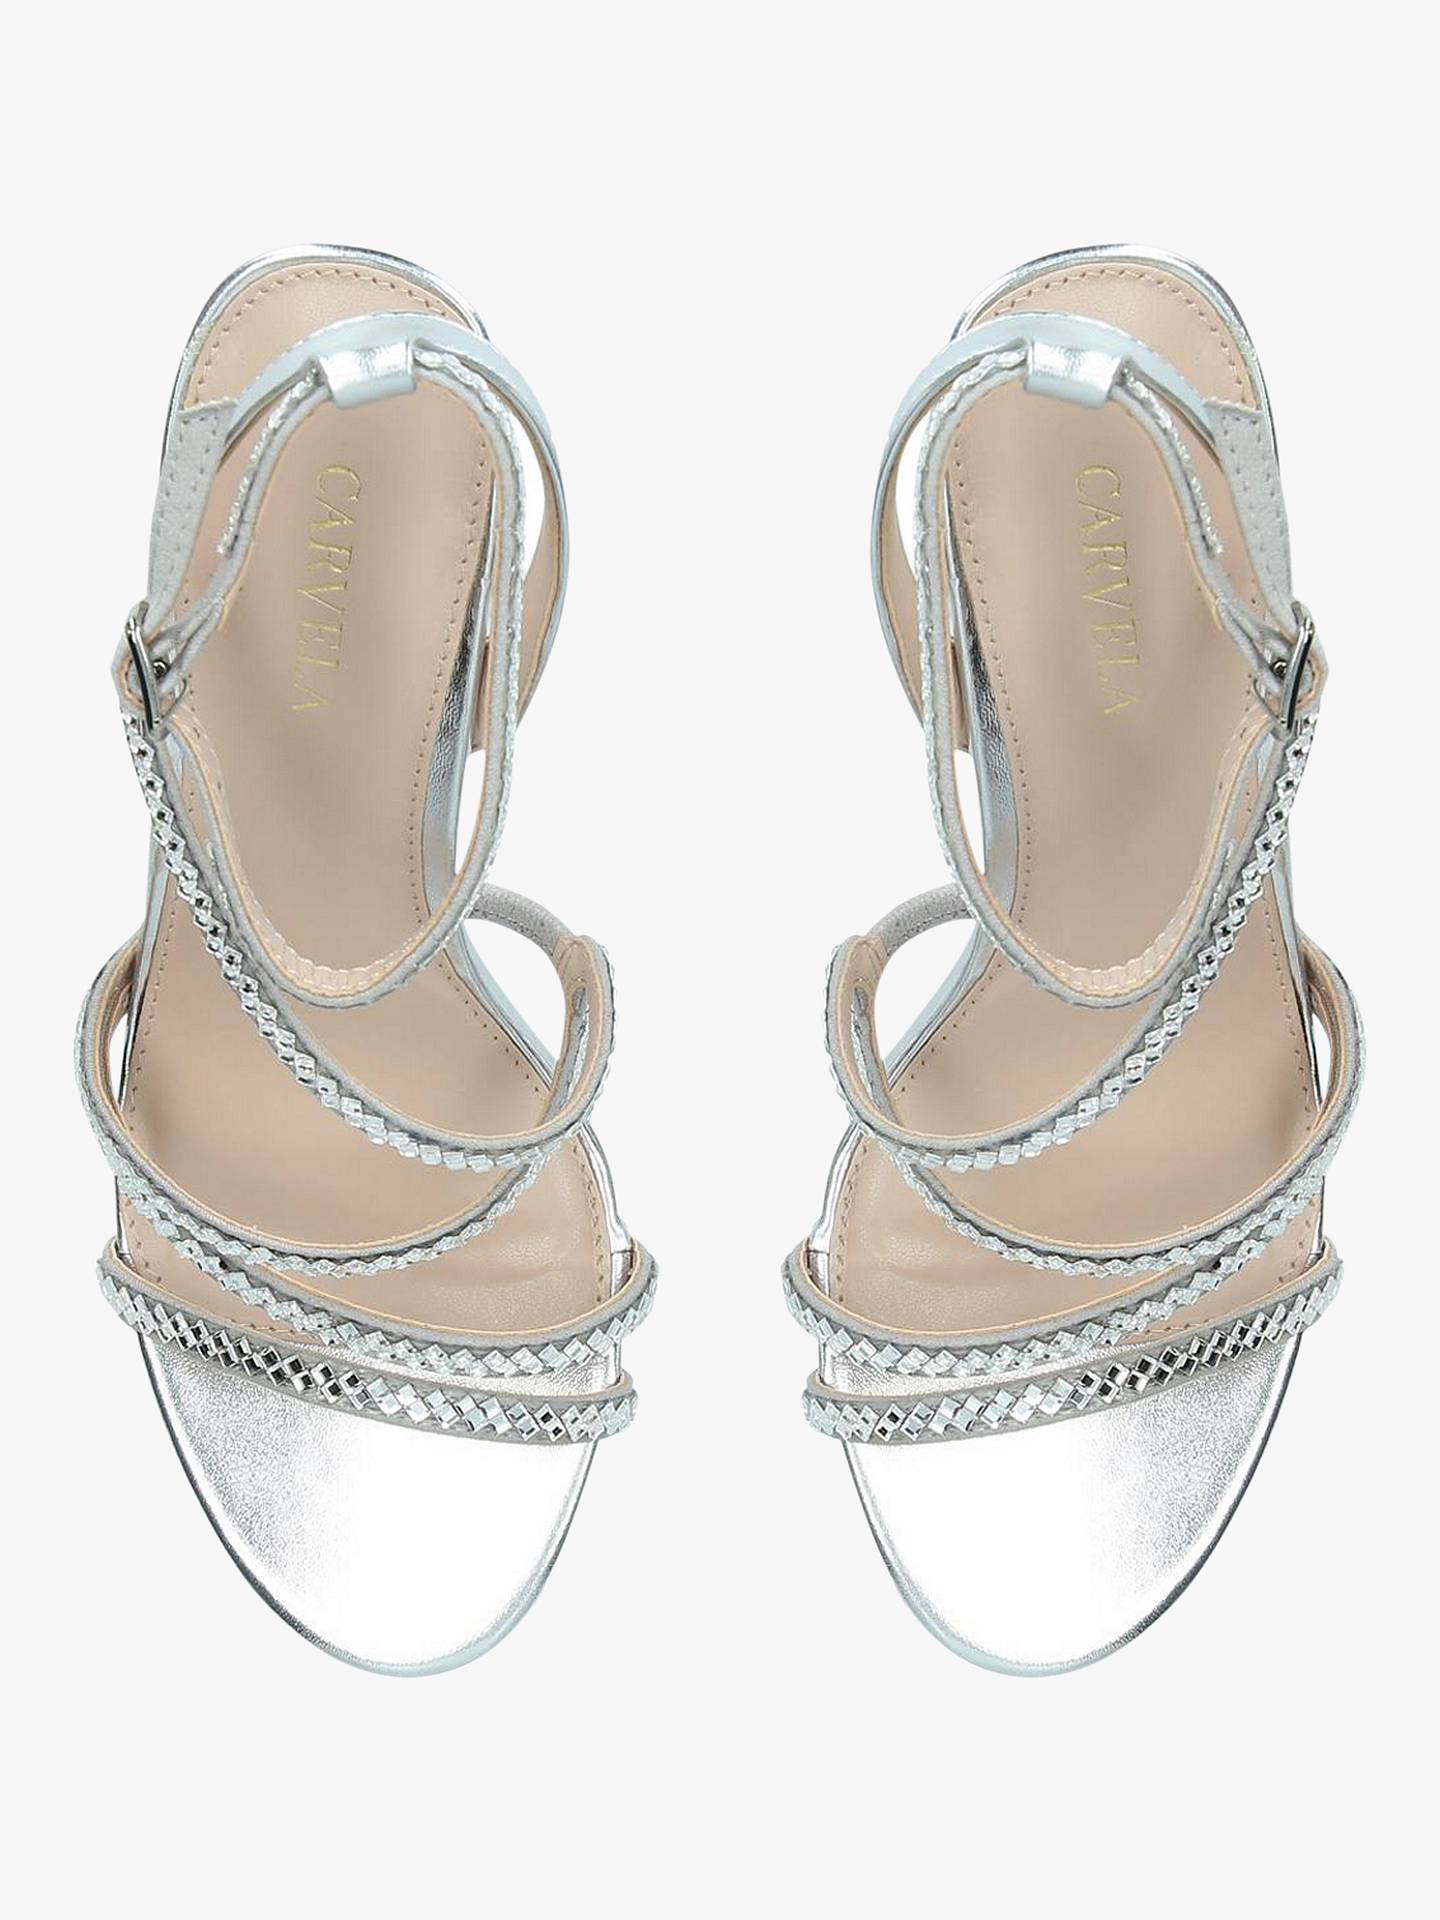 1e1a608d436 Carvela Liberty Embellished Stiletto Heel Strappy Sandals, Silver